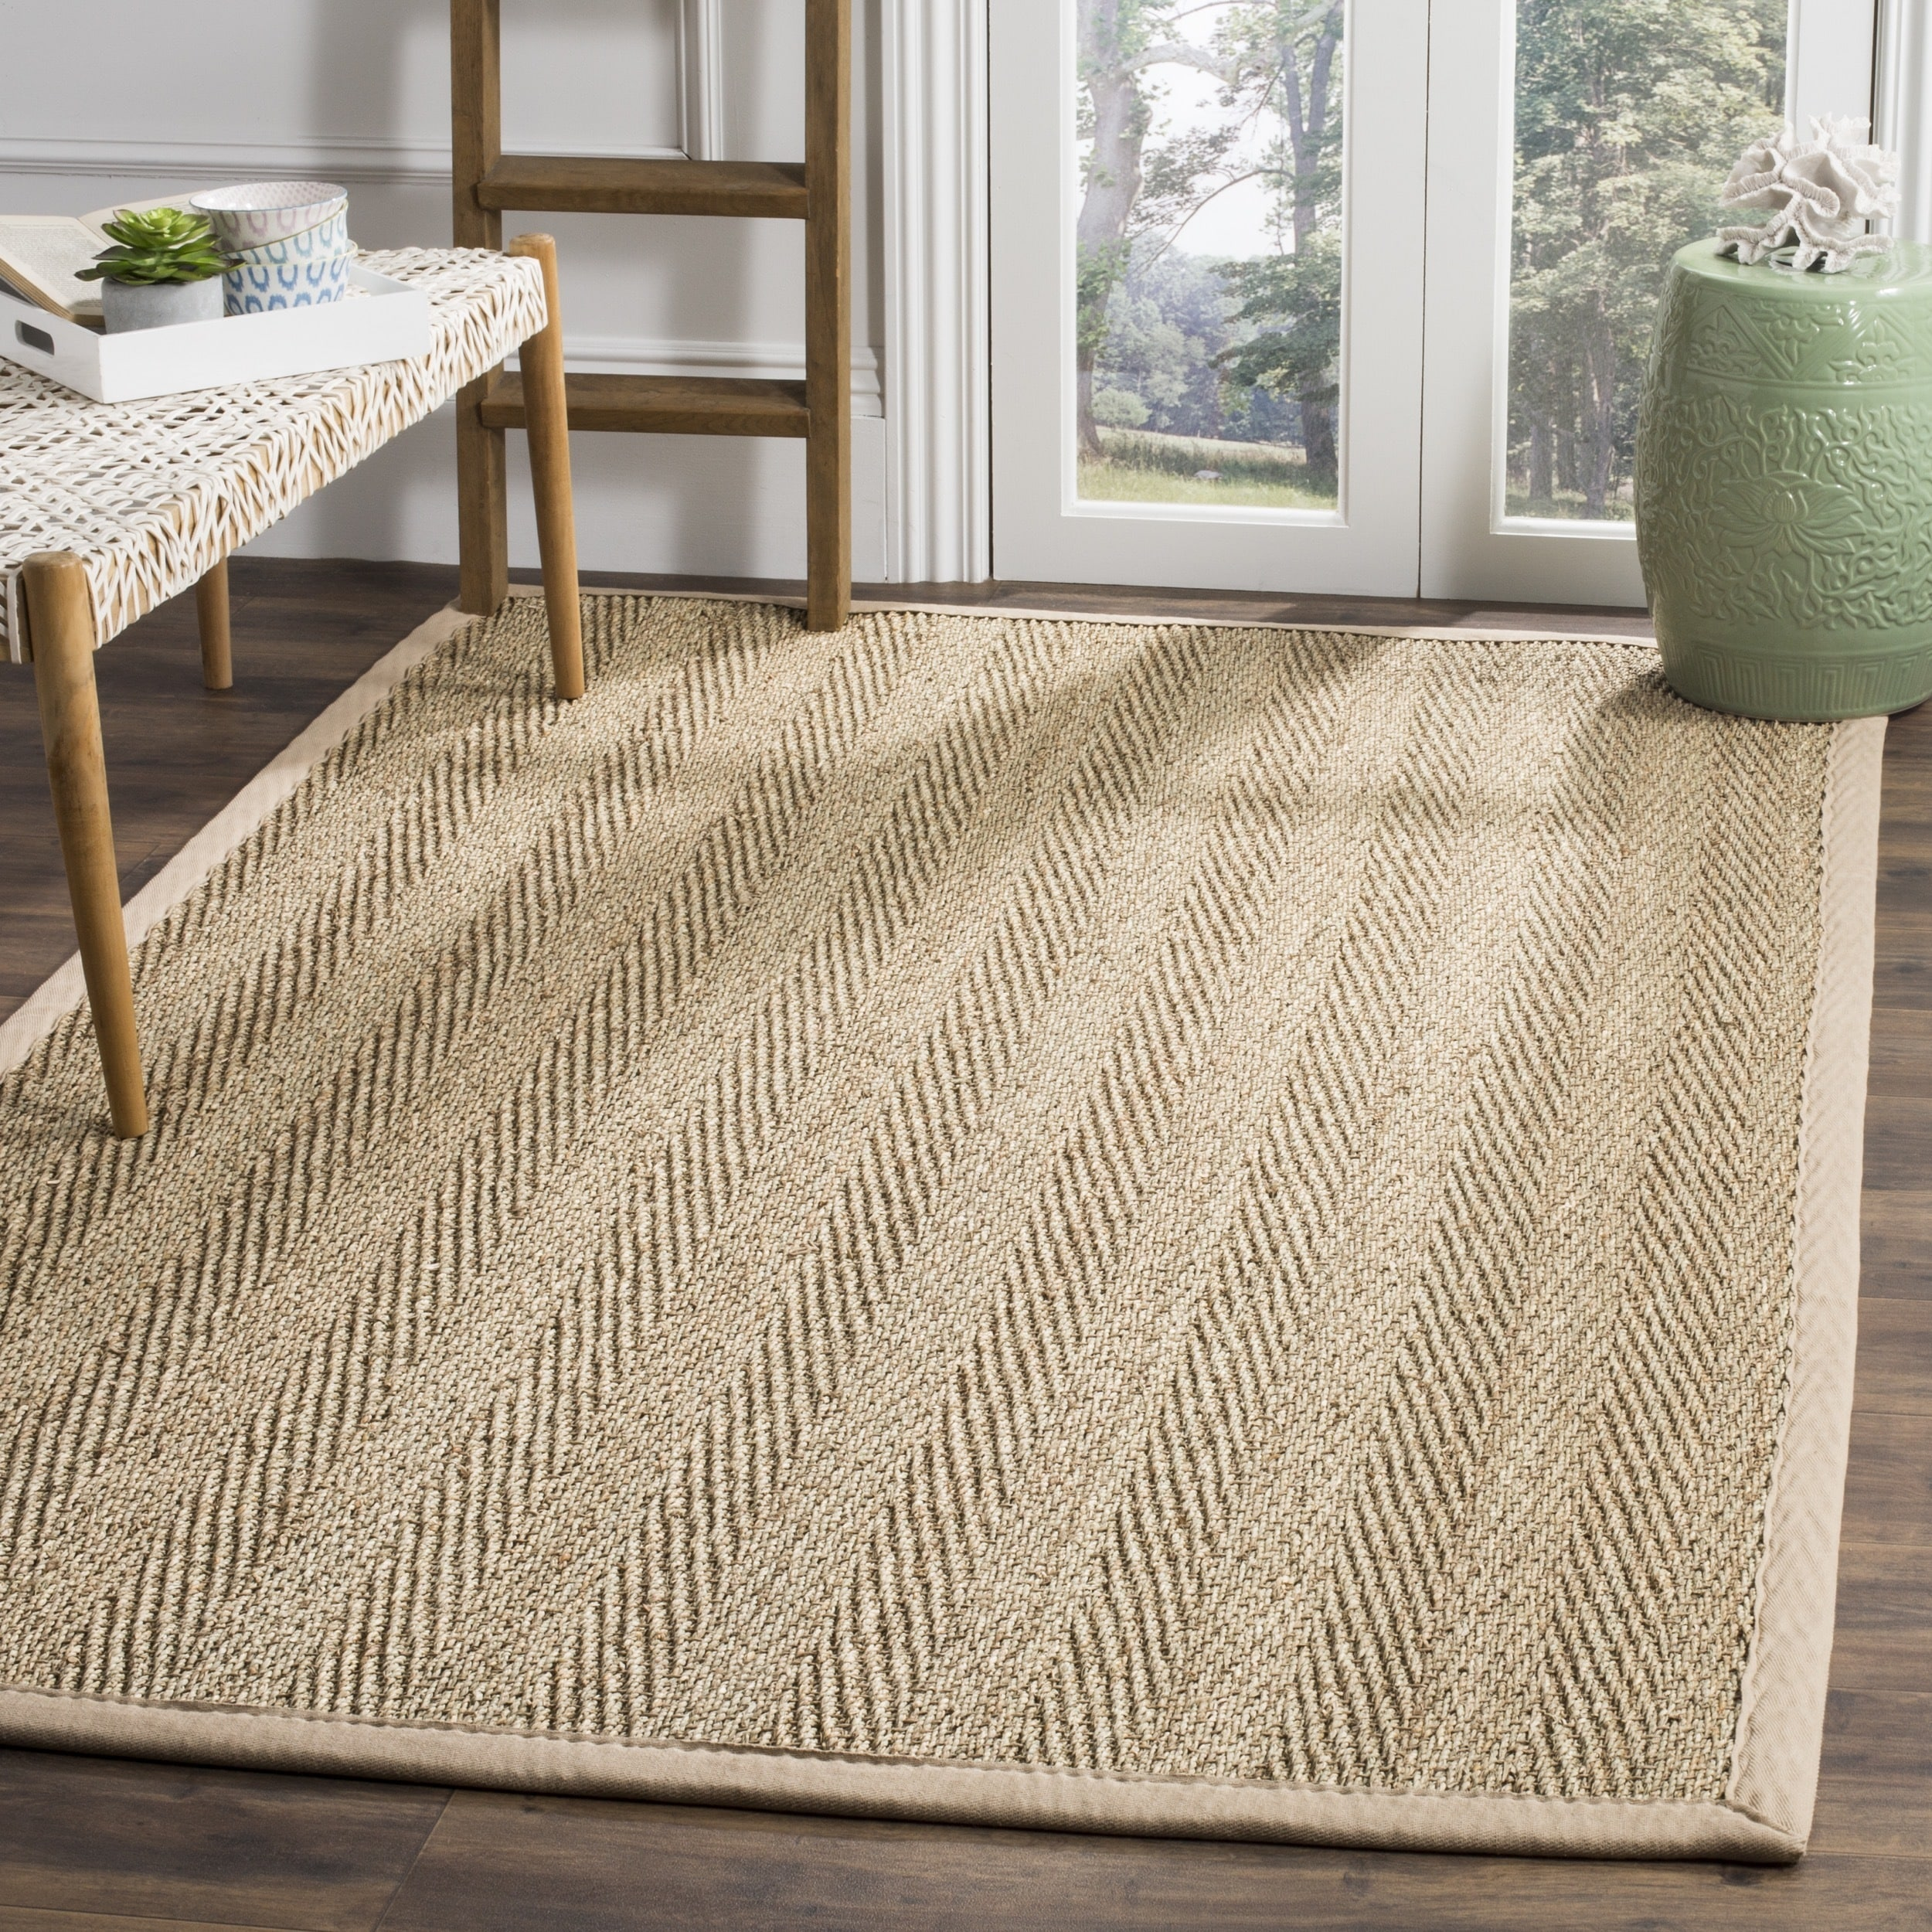 Safavieh Casual Natural Fiber Hand Woven Sisal Beige Seagr Area Rug 6 X 9 Free Shipping Today 11288273